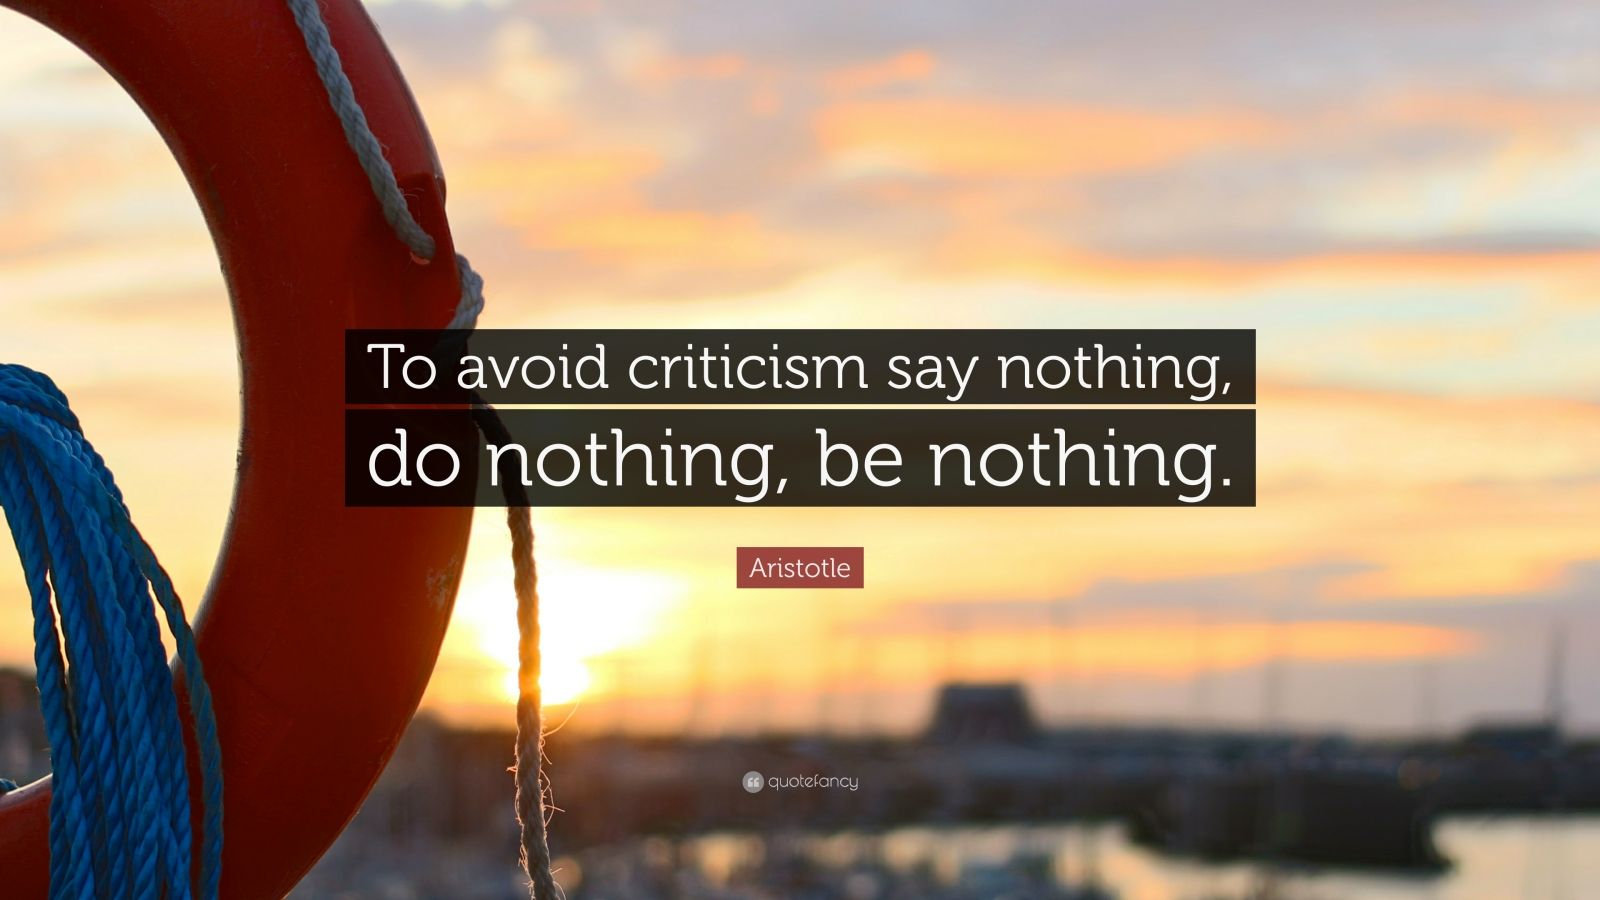 John Lennon Wallpaper Quotes Aristotle Quote To Avoid Criticism Say Nothing Do